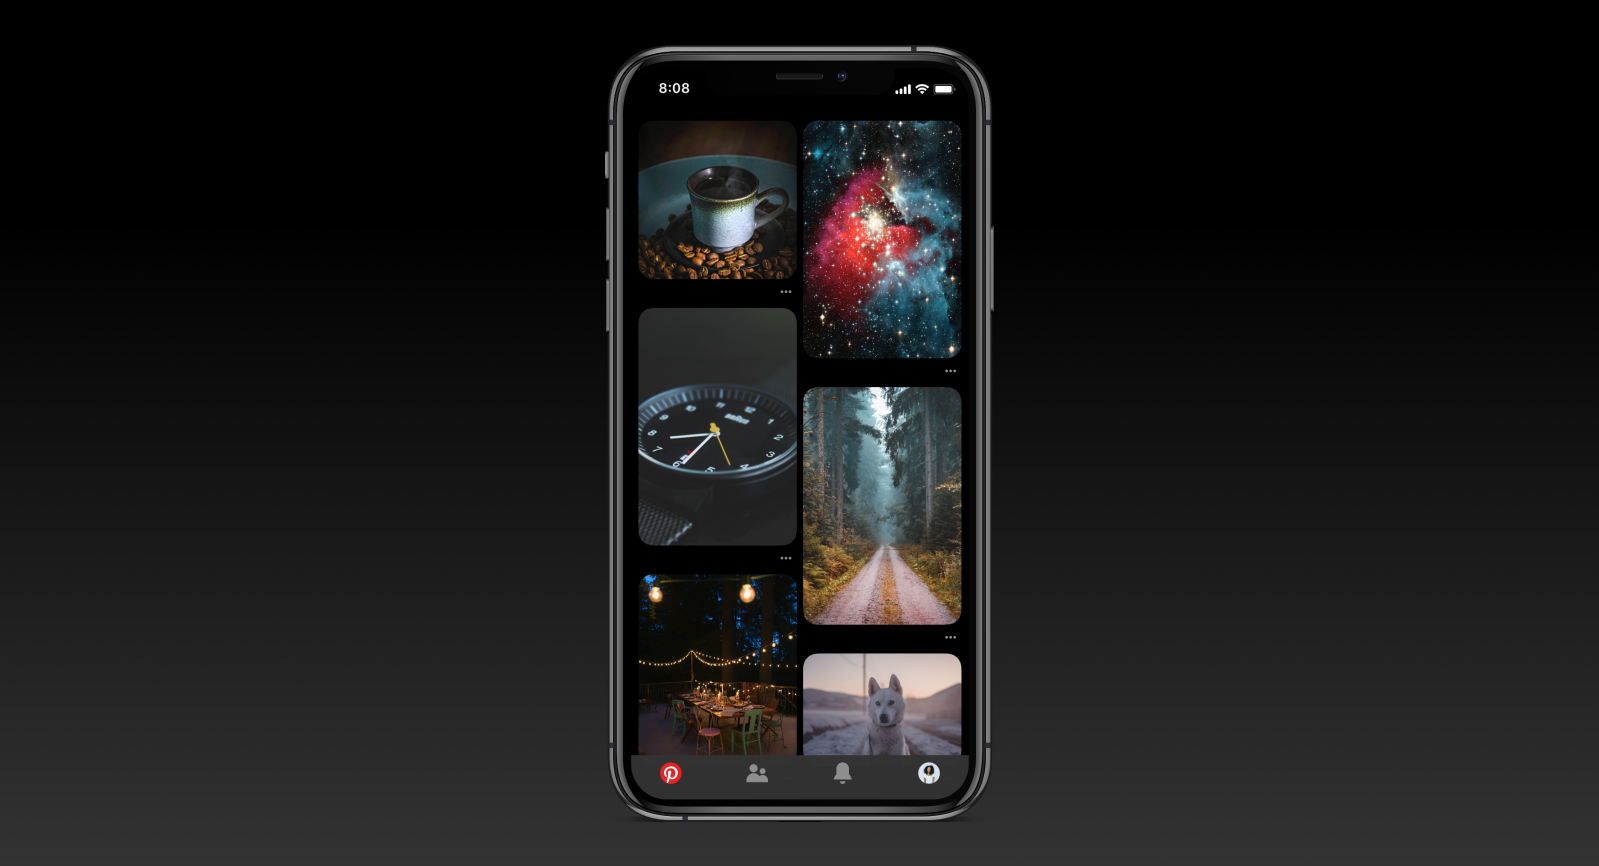 Pinterest updated for iOS 13 with support for Dark Mode